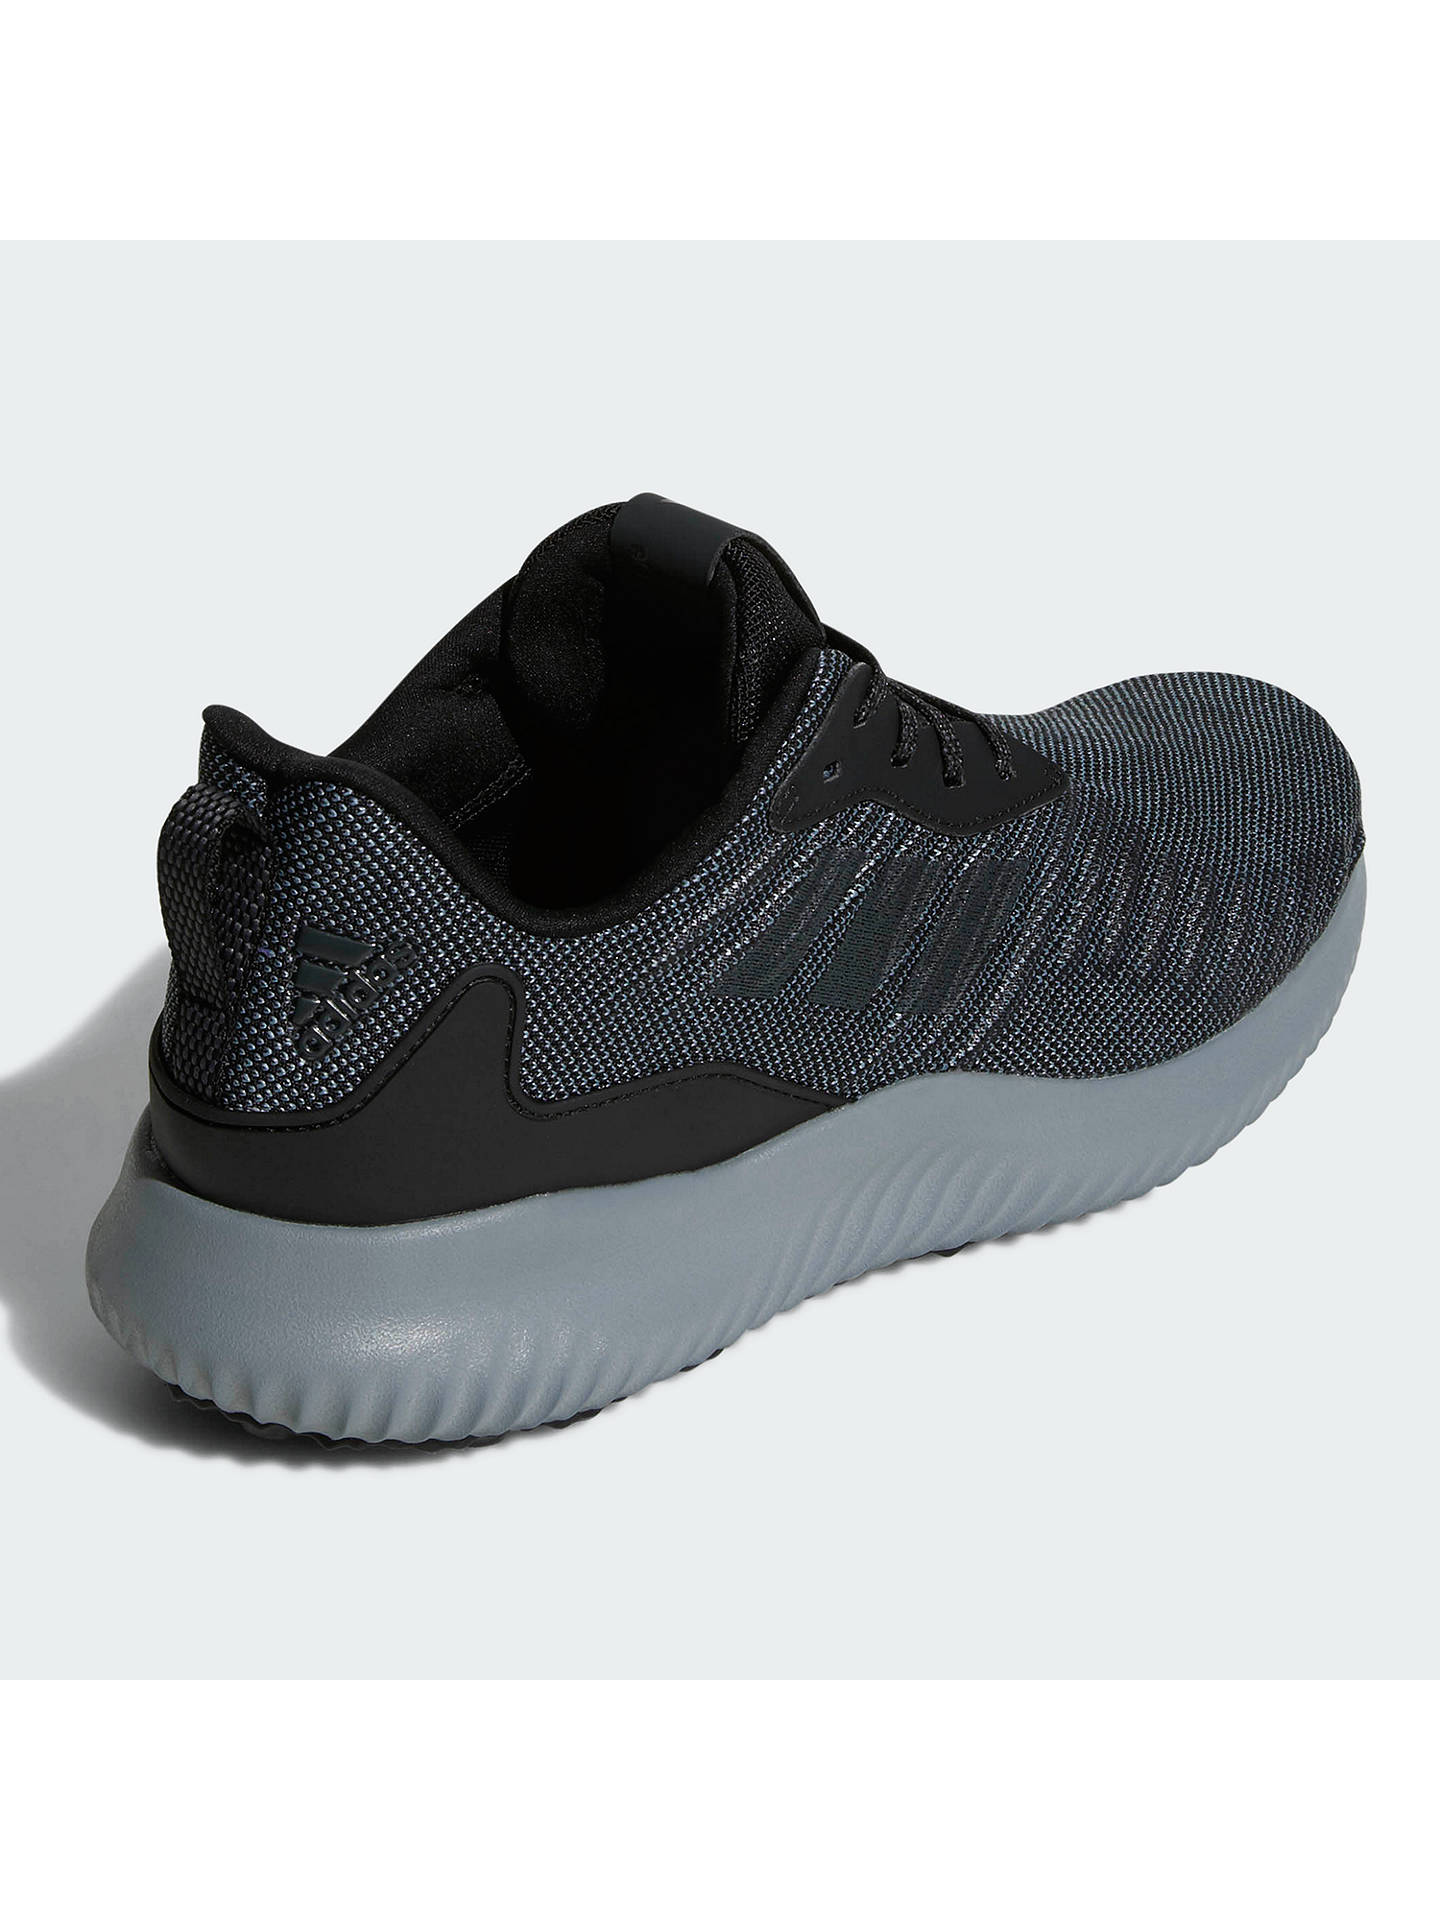 Adidas Alphabounce RC Mens 9.5 Sneakers and 50 similar items